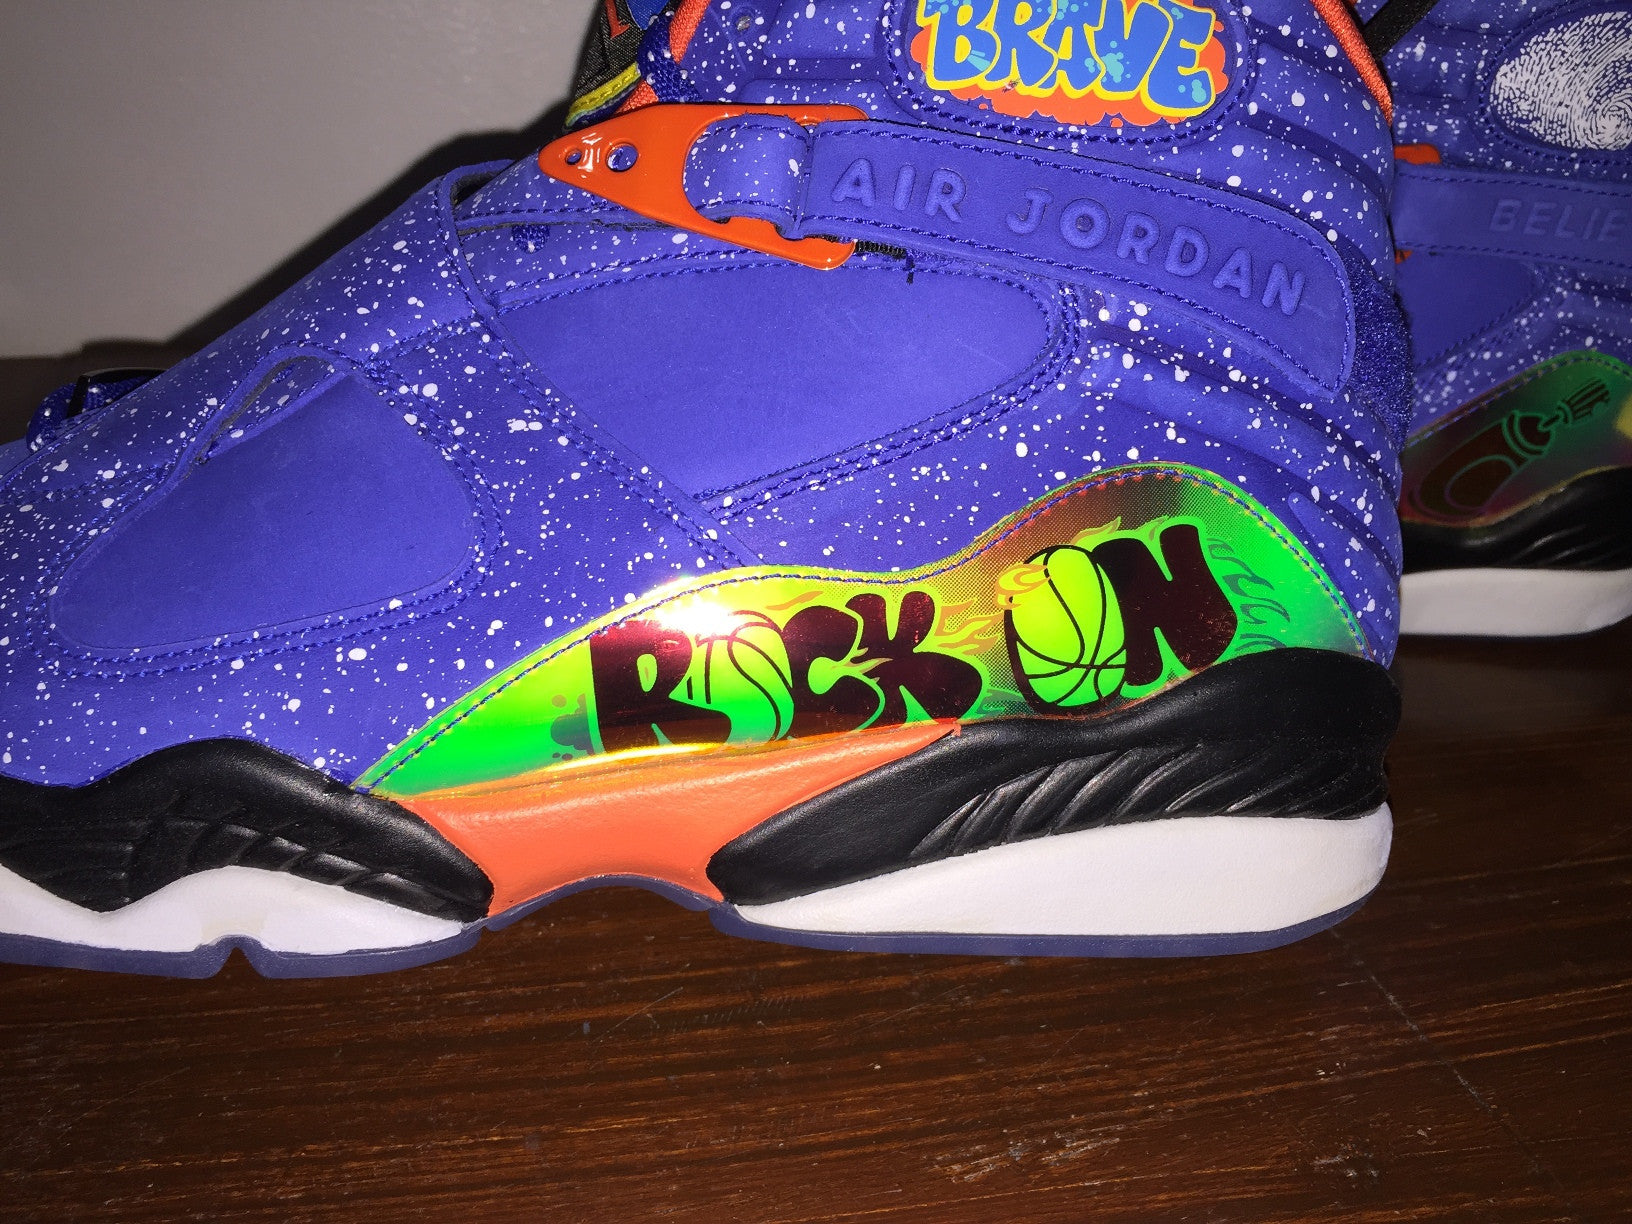 the best attitude 888cc c5bc8 ... Nike Air Jordan 8 VIII Retro Doernbecher   DB8 ...